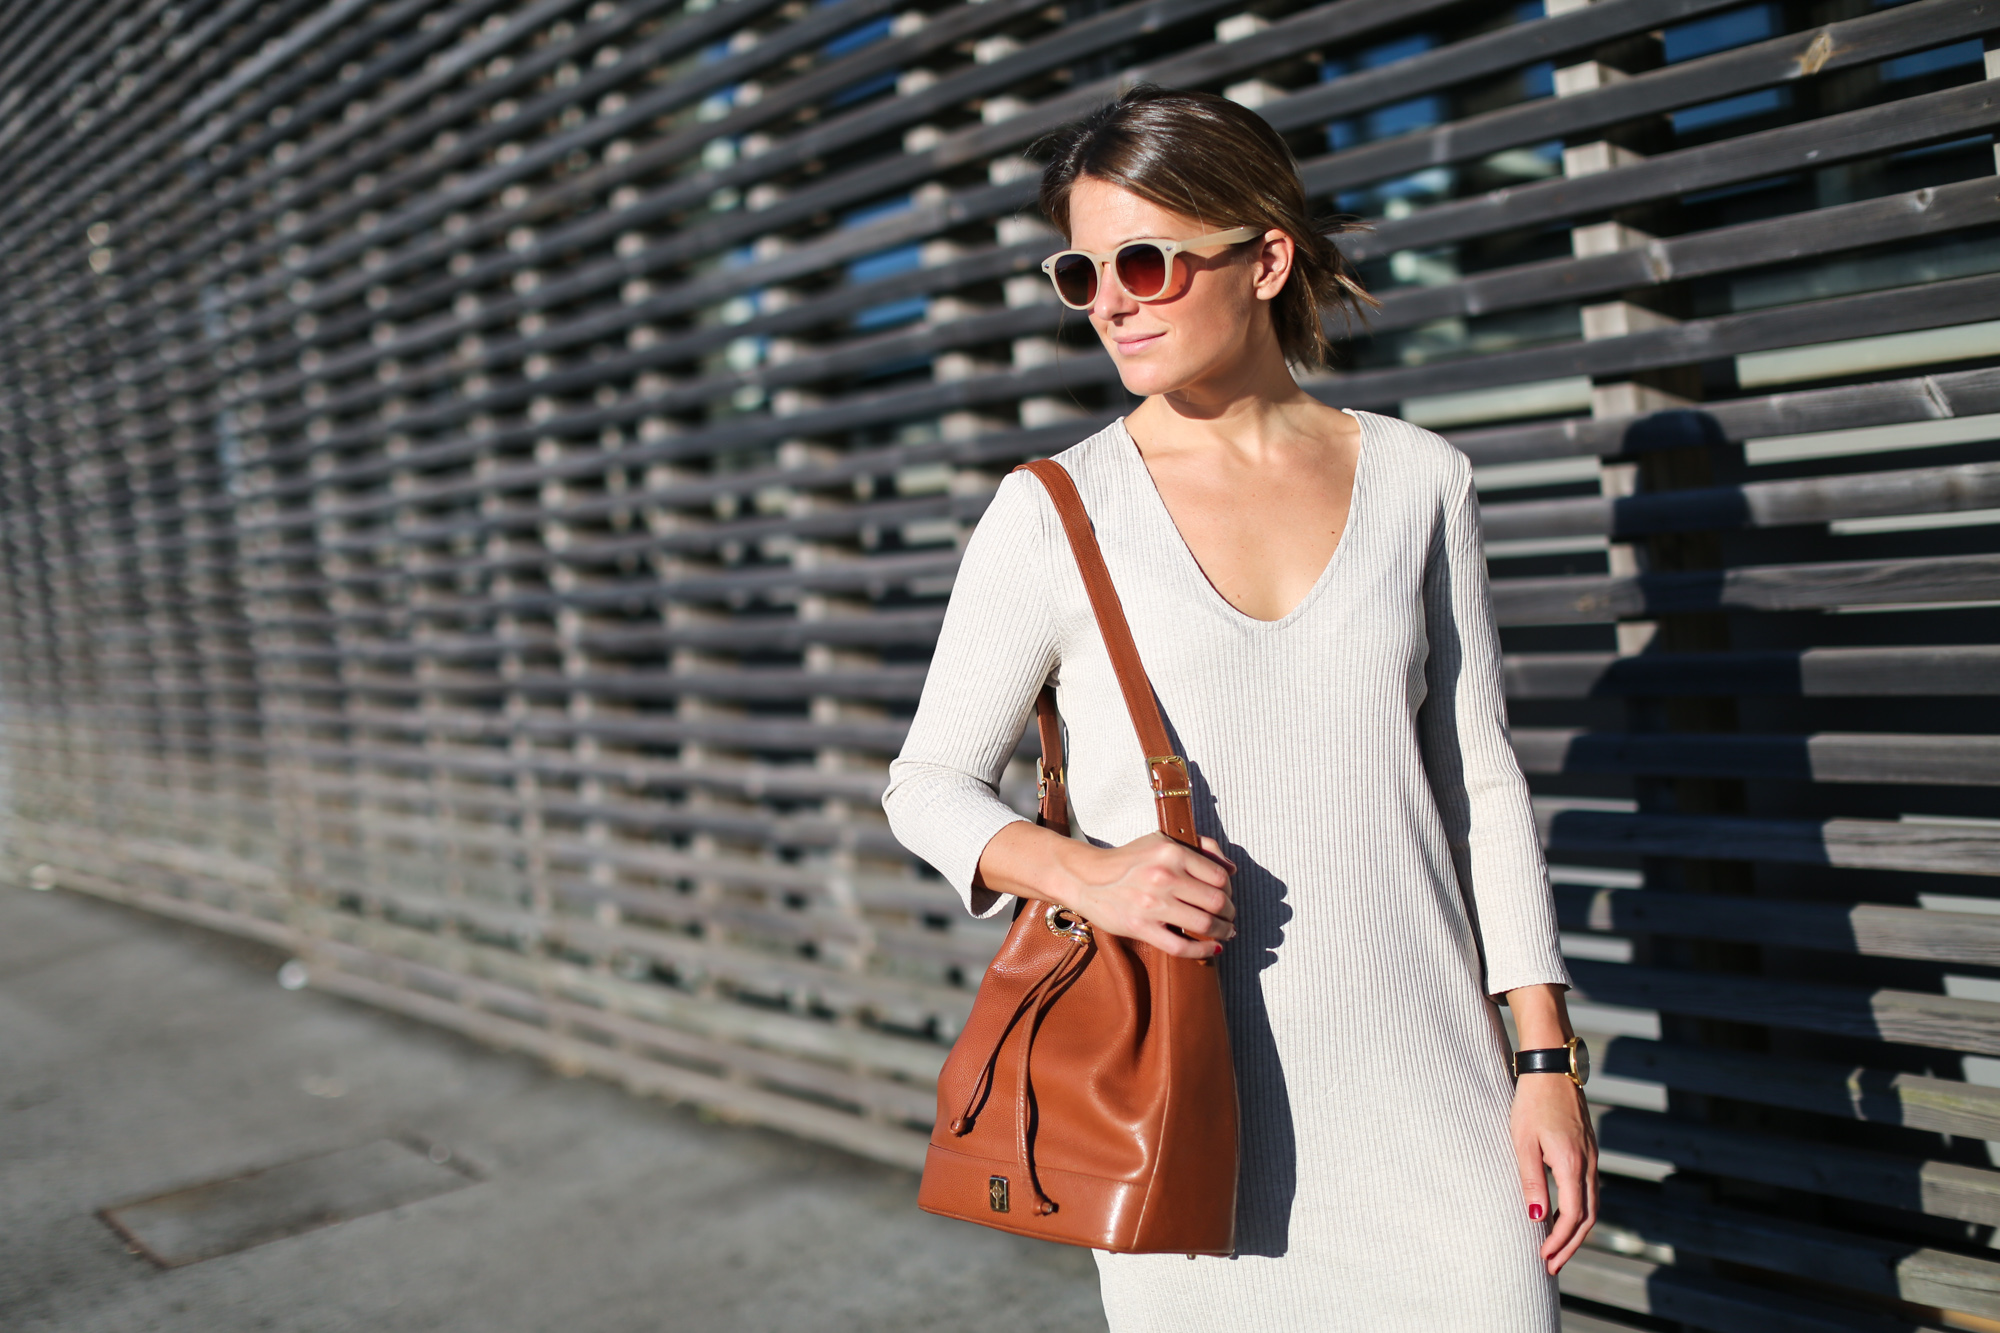 Clochet_streetstyle_mango_beige_knit_long_dress_bucket_leather_bag